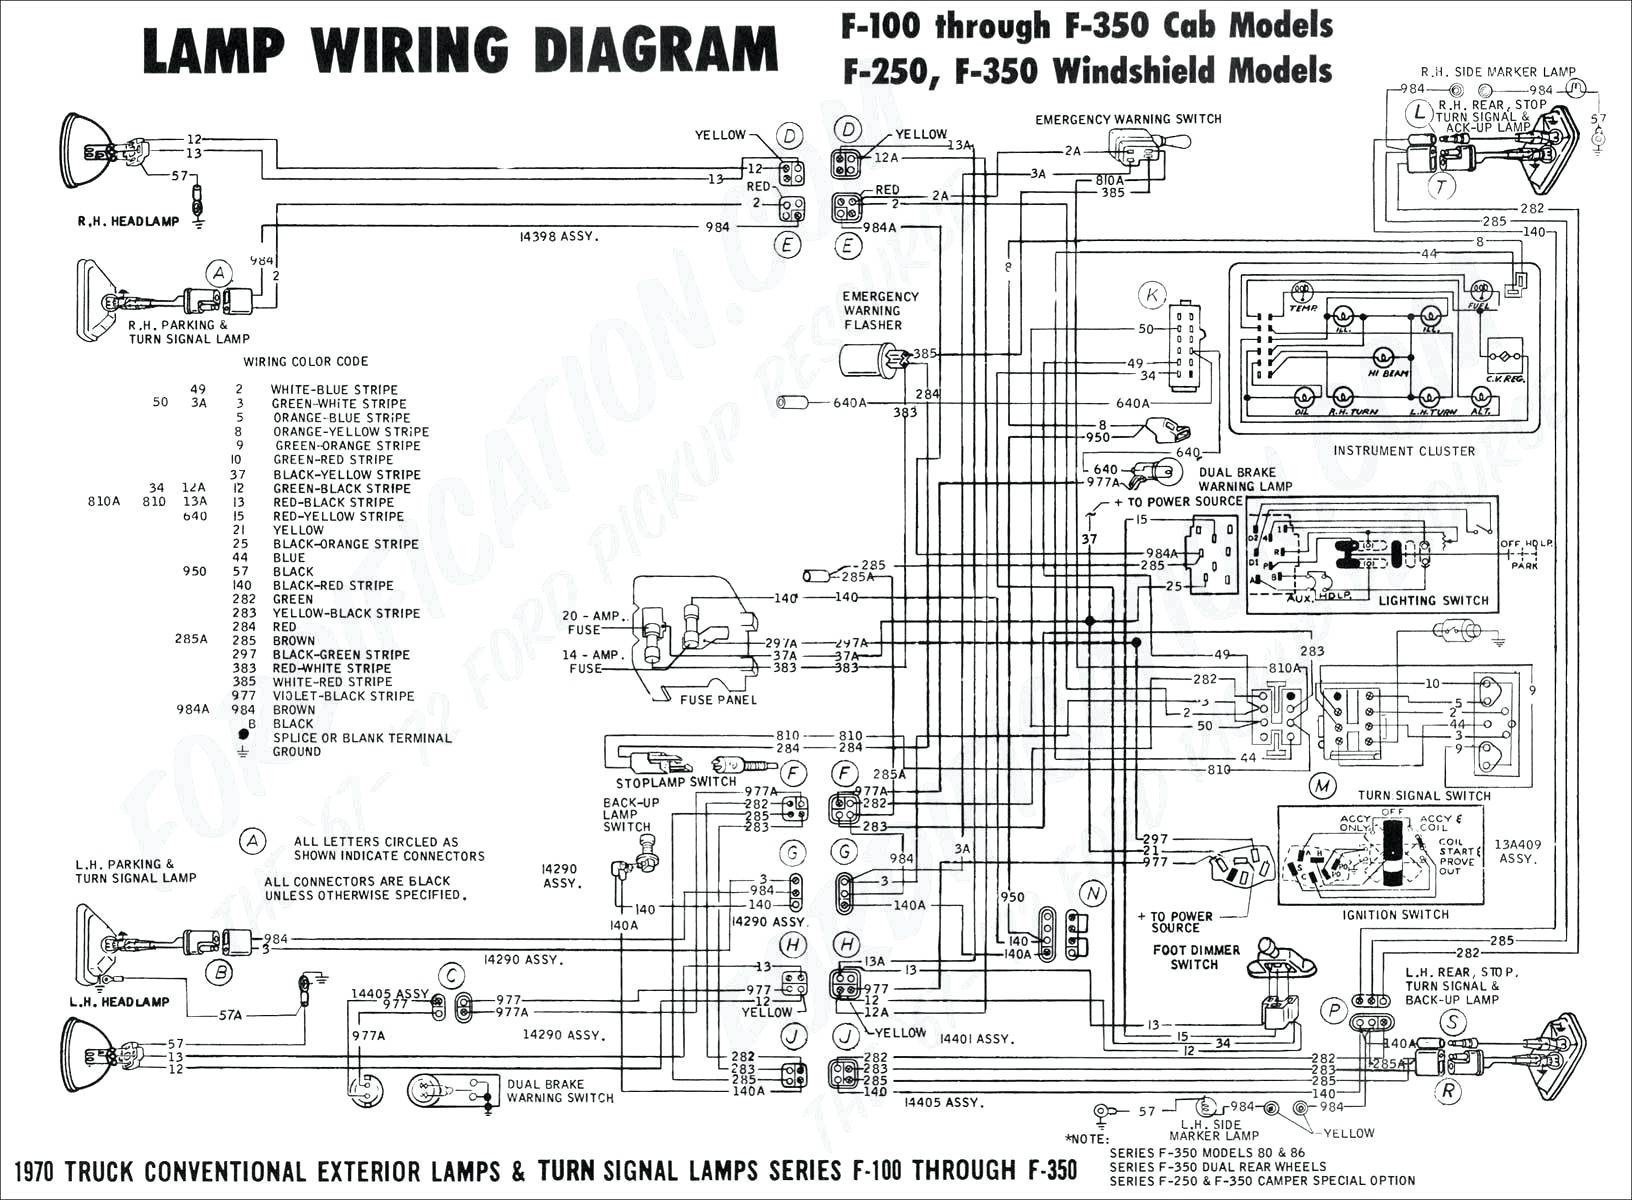 pressure switch wiring diagram Download-1999 Audi A4 Quattro Wiring Diagram Save Audi A4 B6 Concert Wiring Diagram Inspirationa Audi A4 19-j